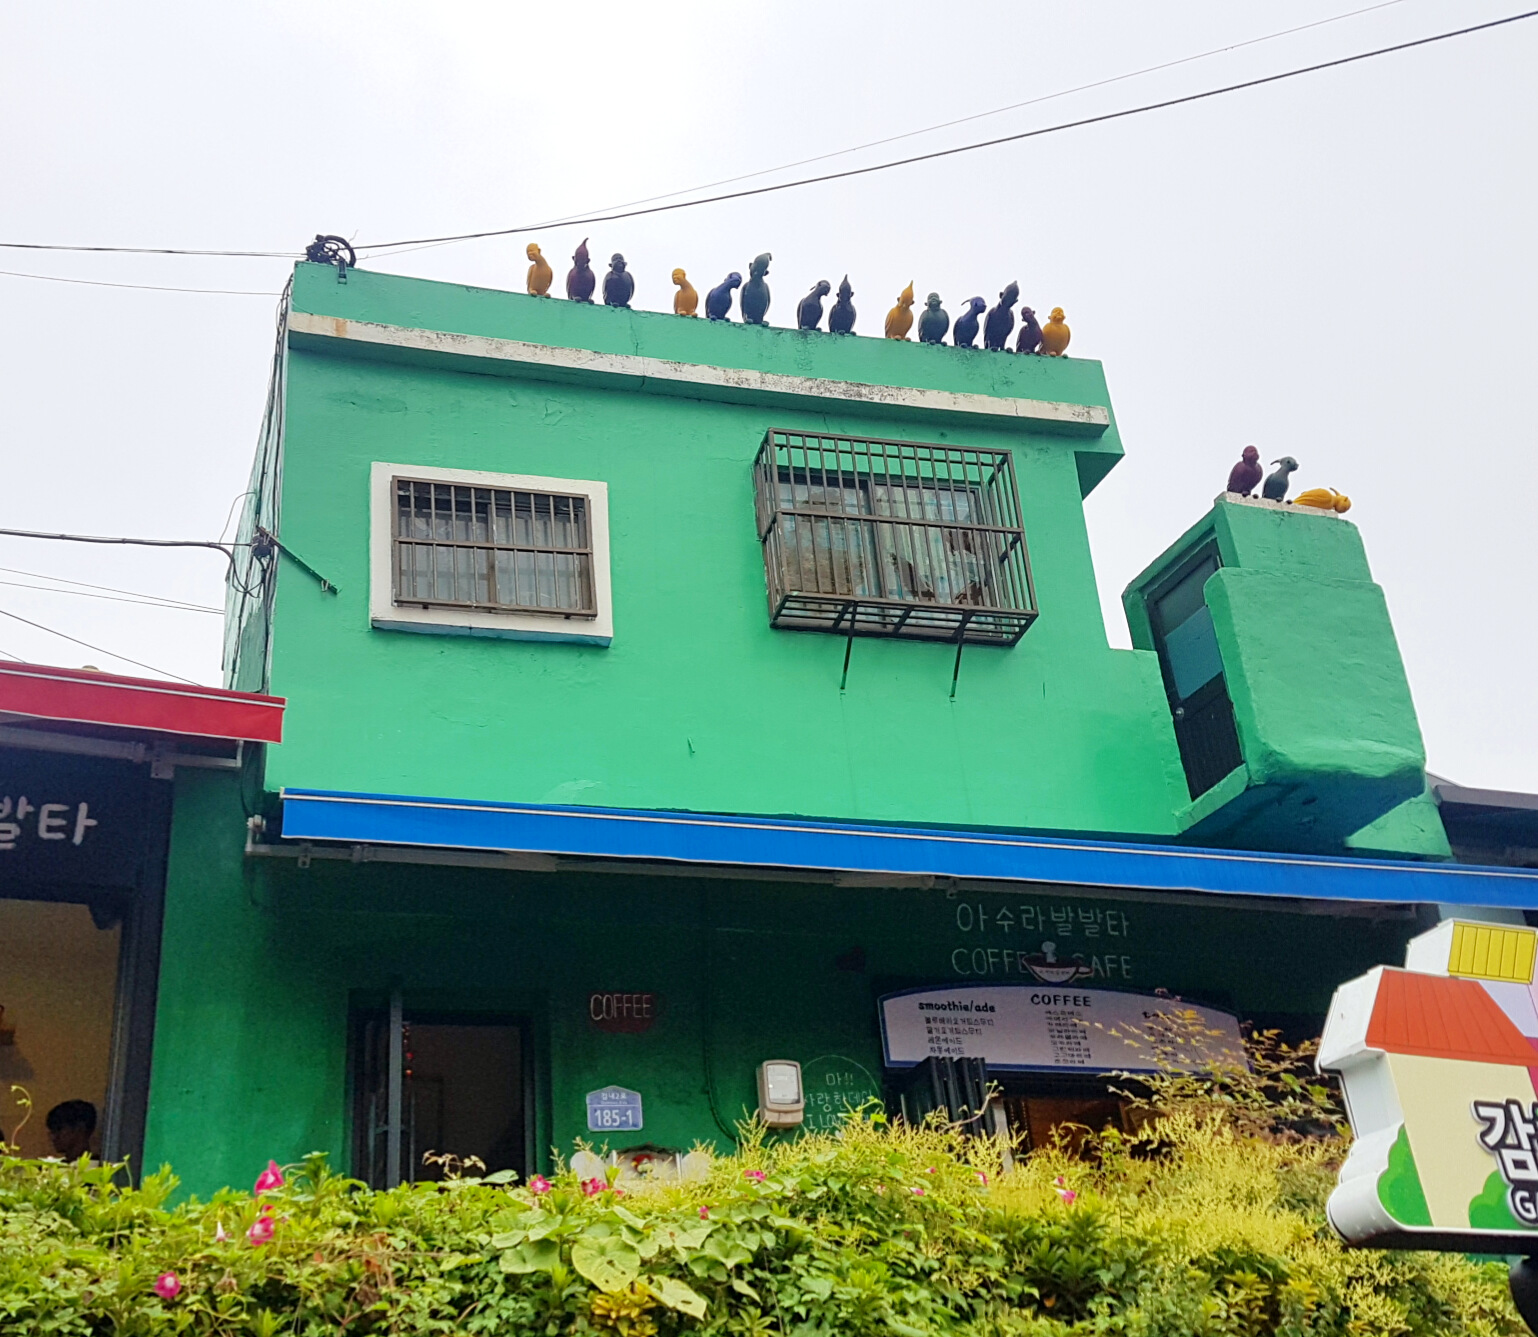 Parrots chilling on the roof. Many houses ands streets are filled fun, unexpected details.